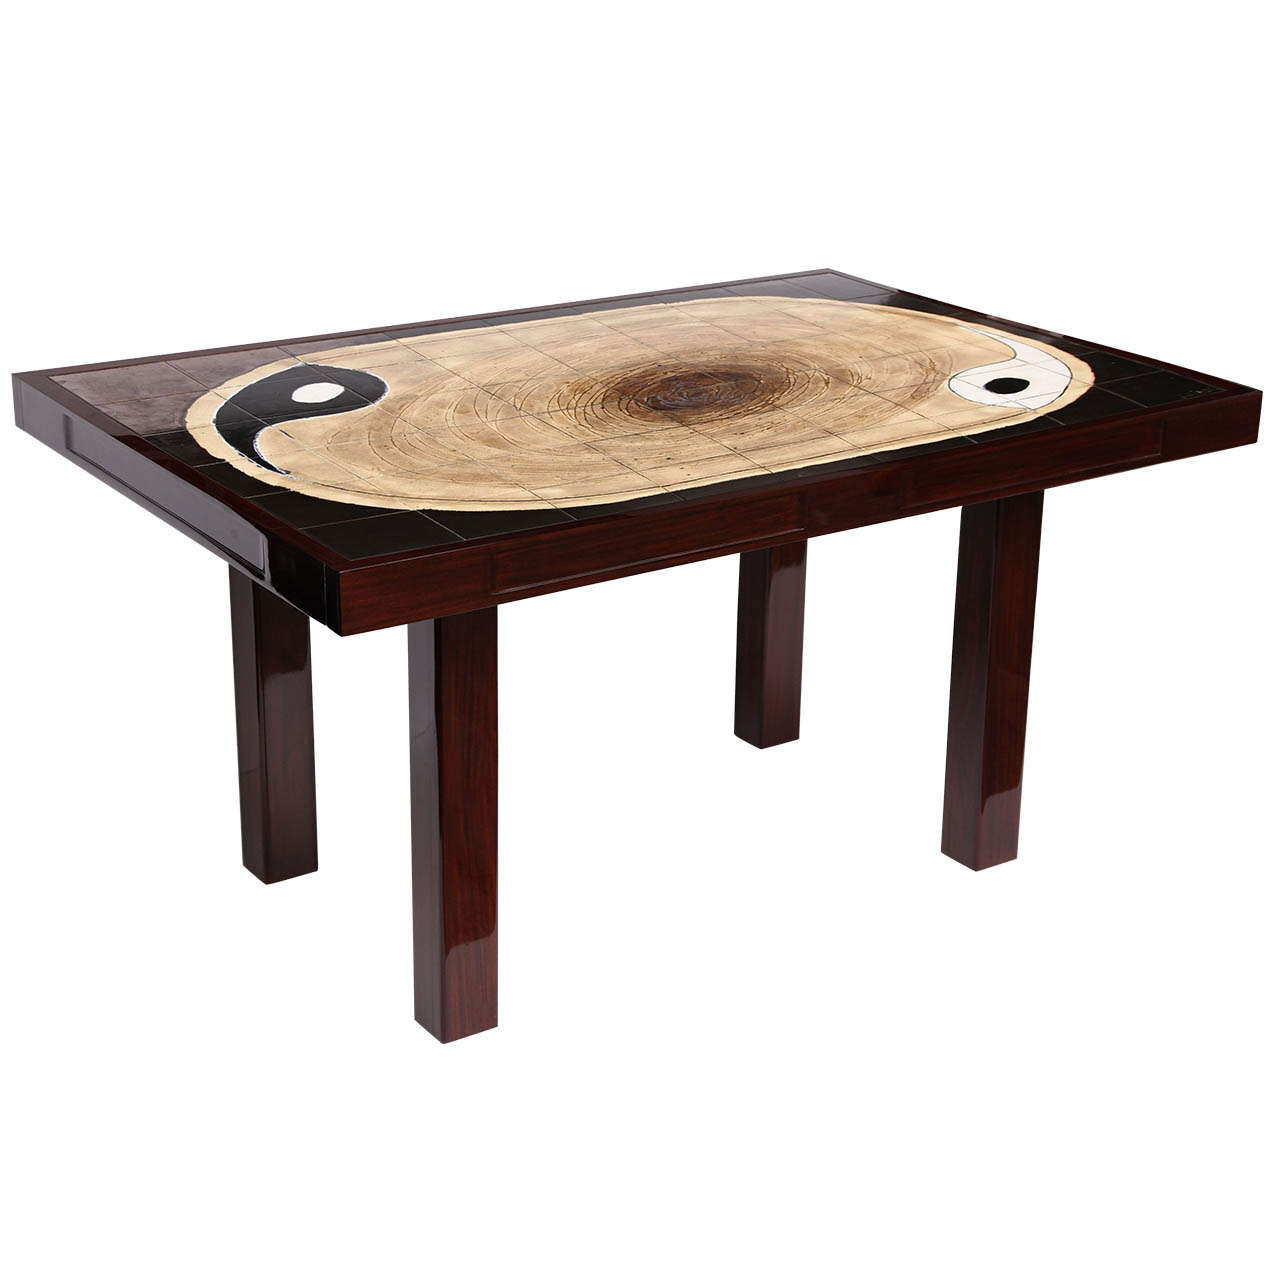 Yin yang ceramic tile top table for sale at 1stdibs for Table yin yang basse